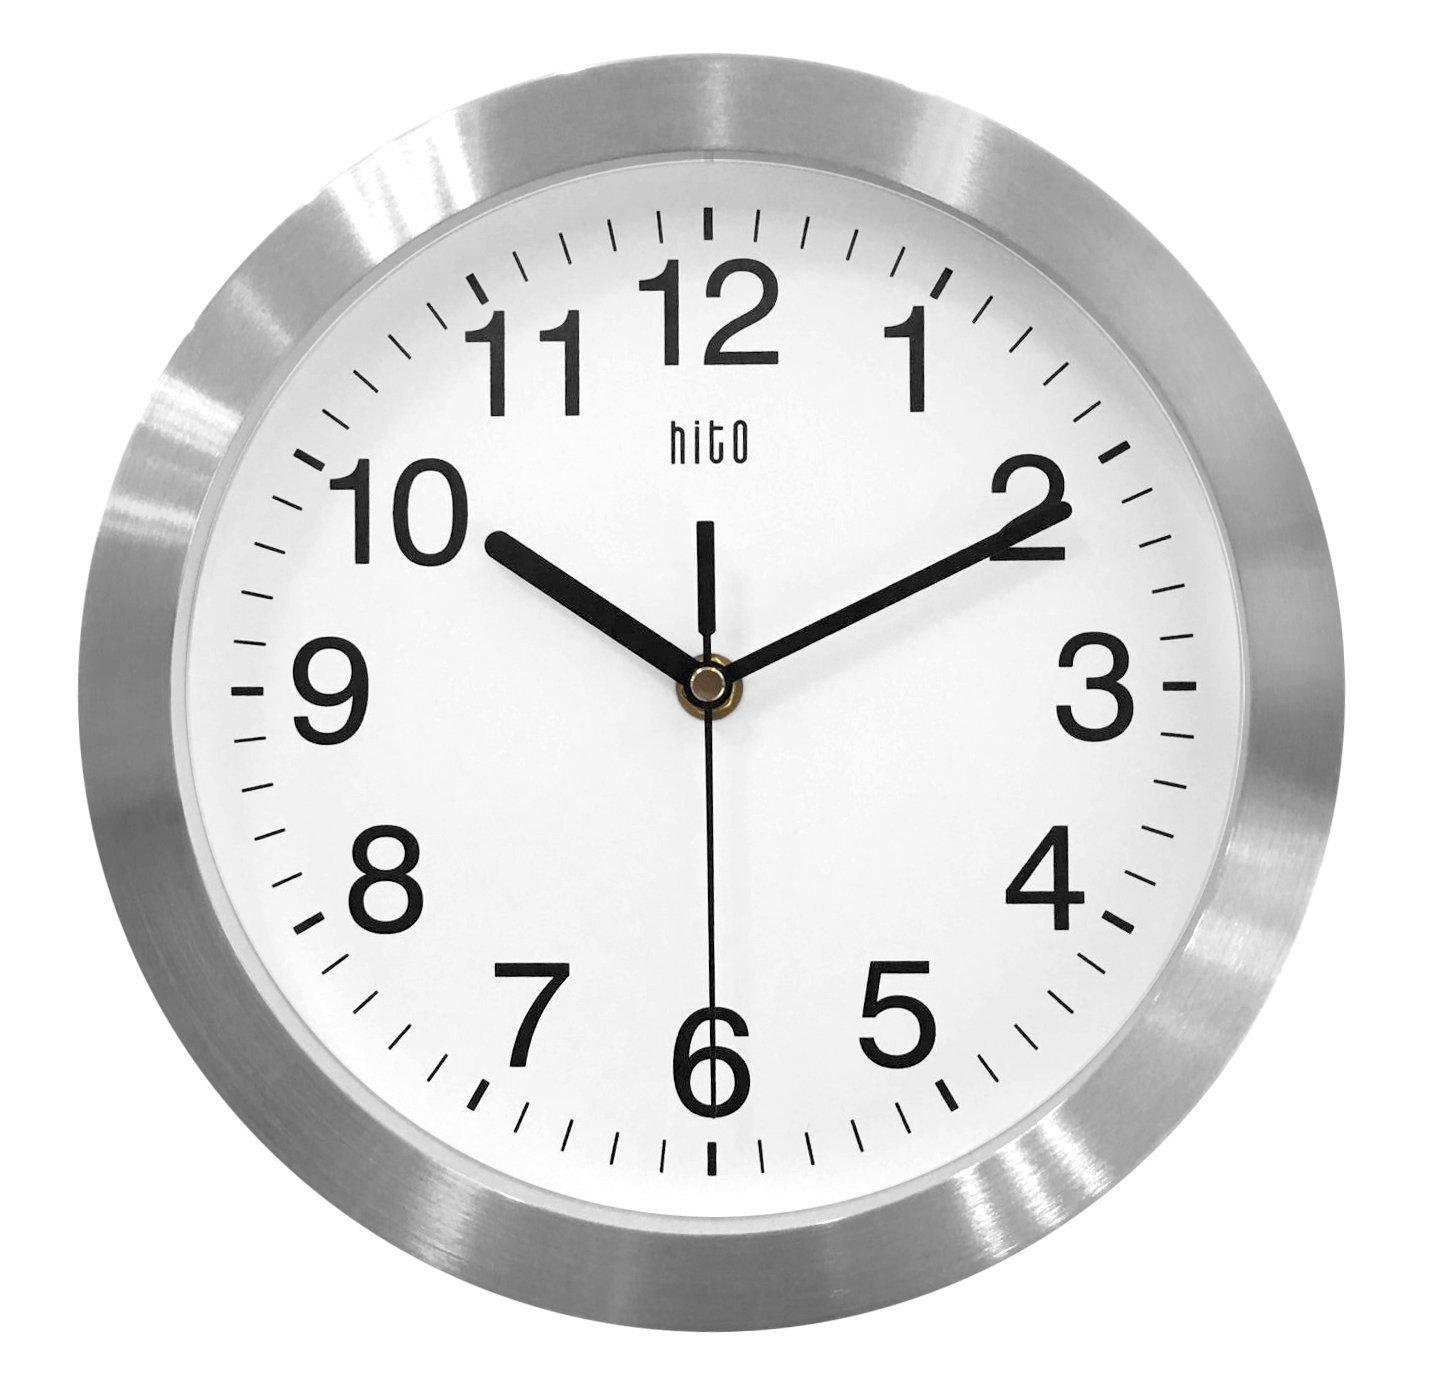 small wall clocks telling the time in style cool ideas. Black Bedroom Furniture Sets. Home Design Ideas